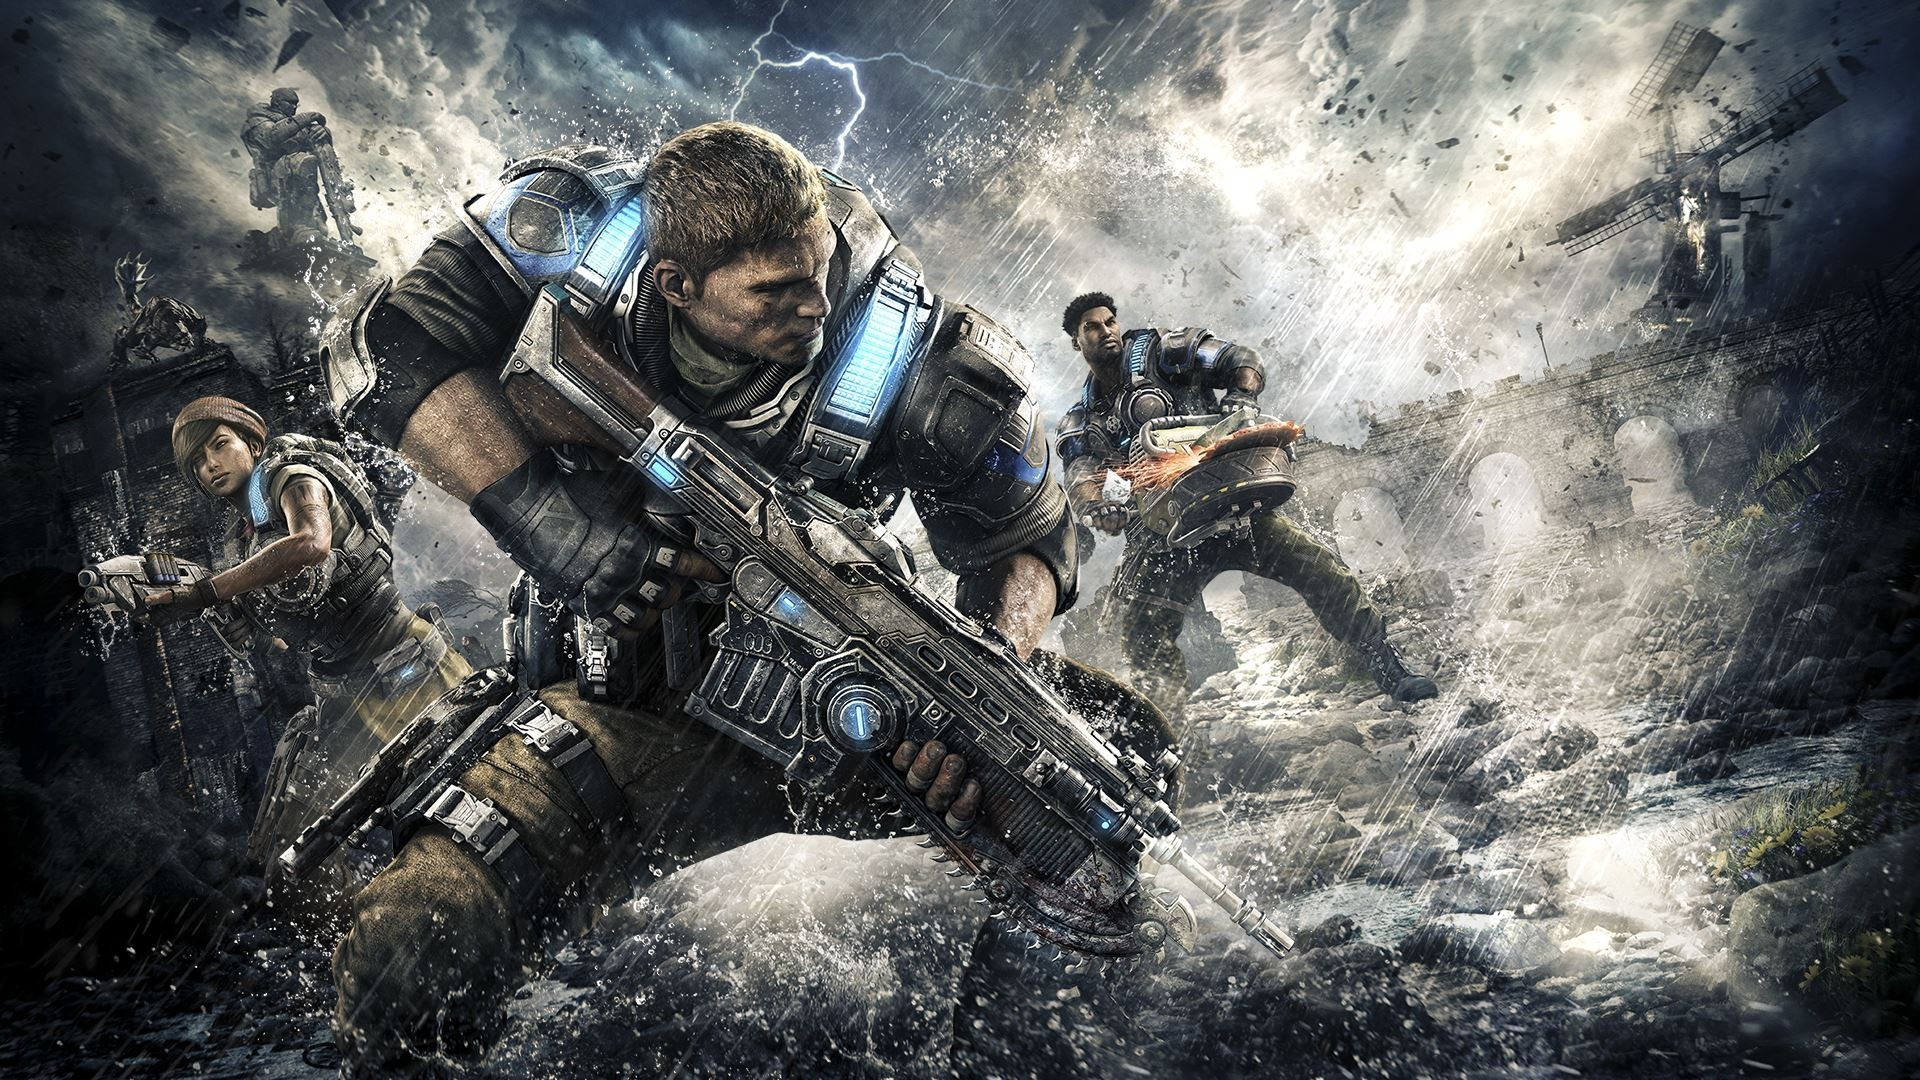 Gears of War 4 (Xbox One & PC)